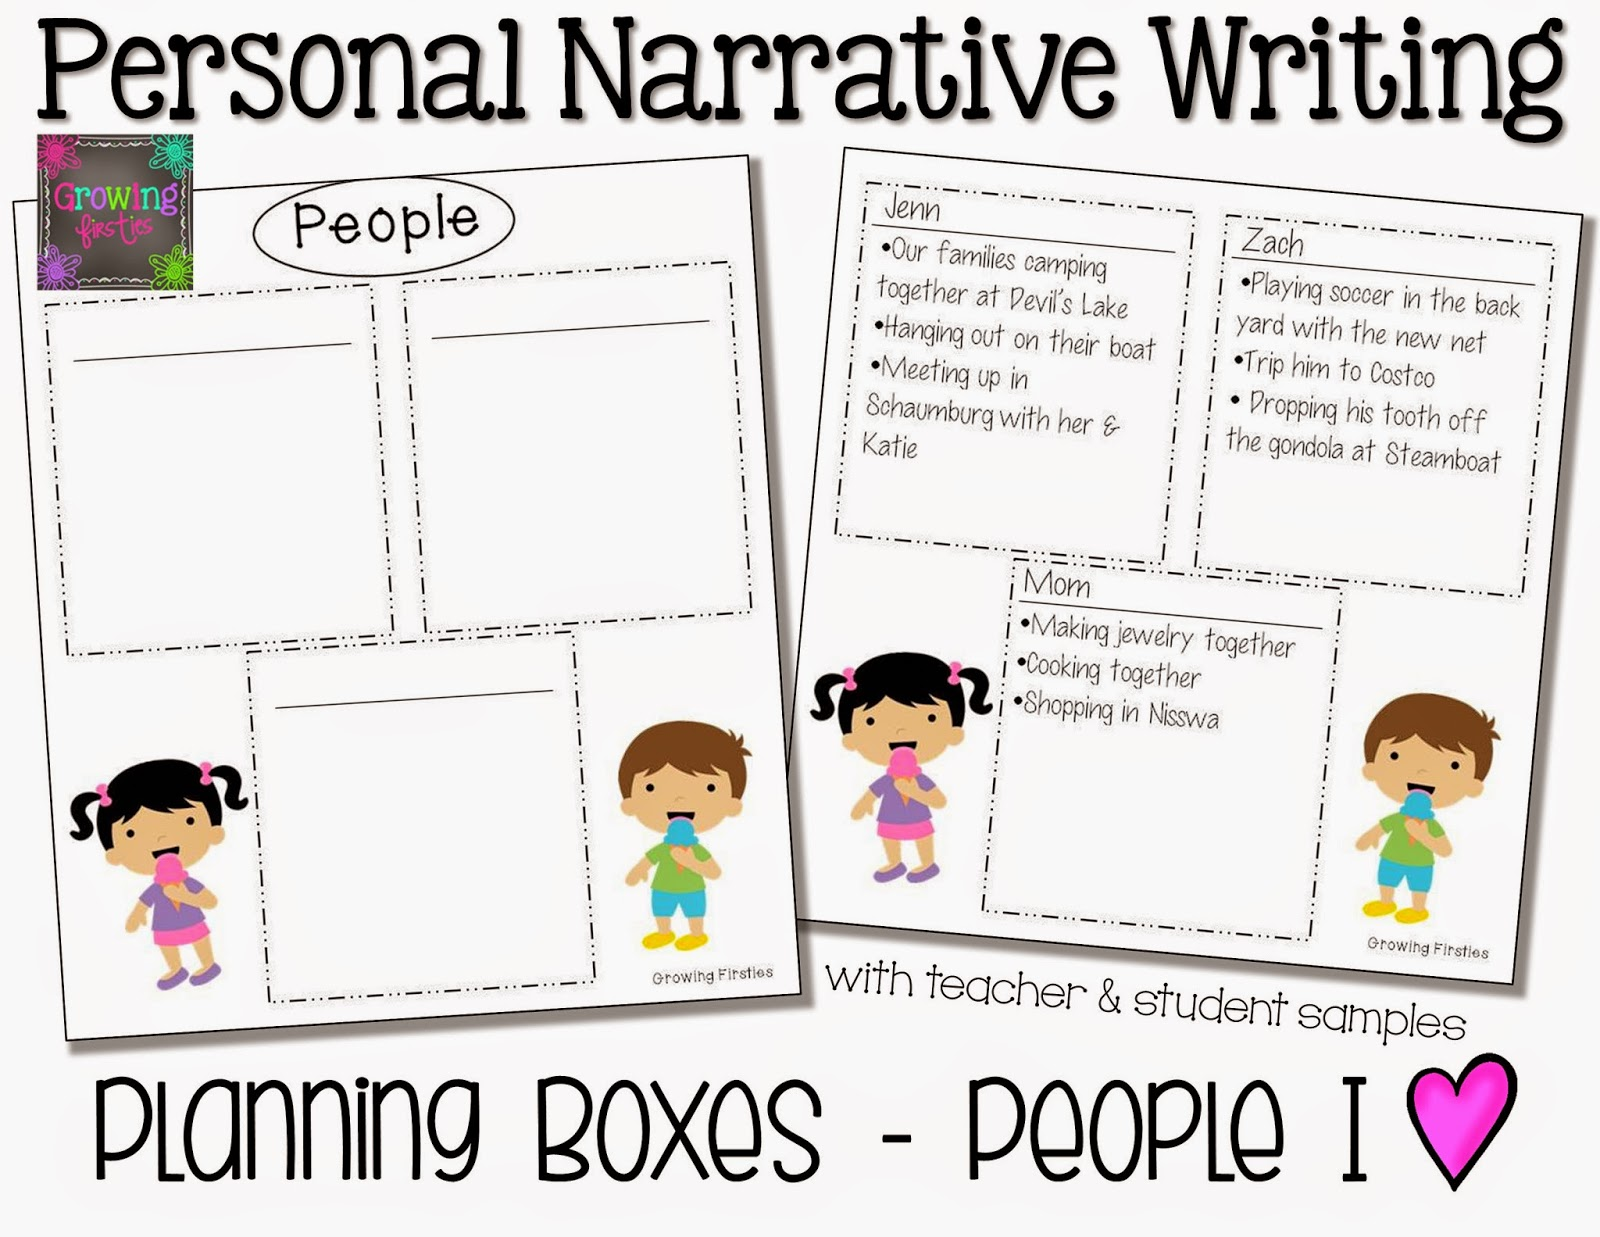 Developing Narrative Writing Skills Unit Plan – Year 3 and Year 4